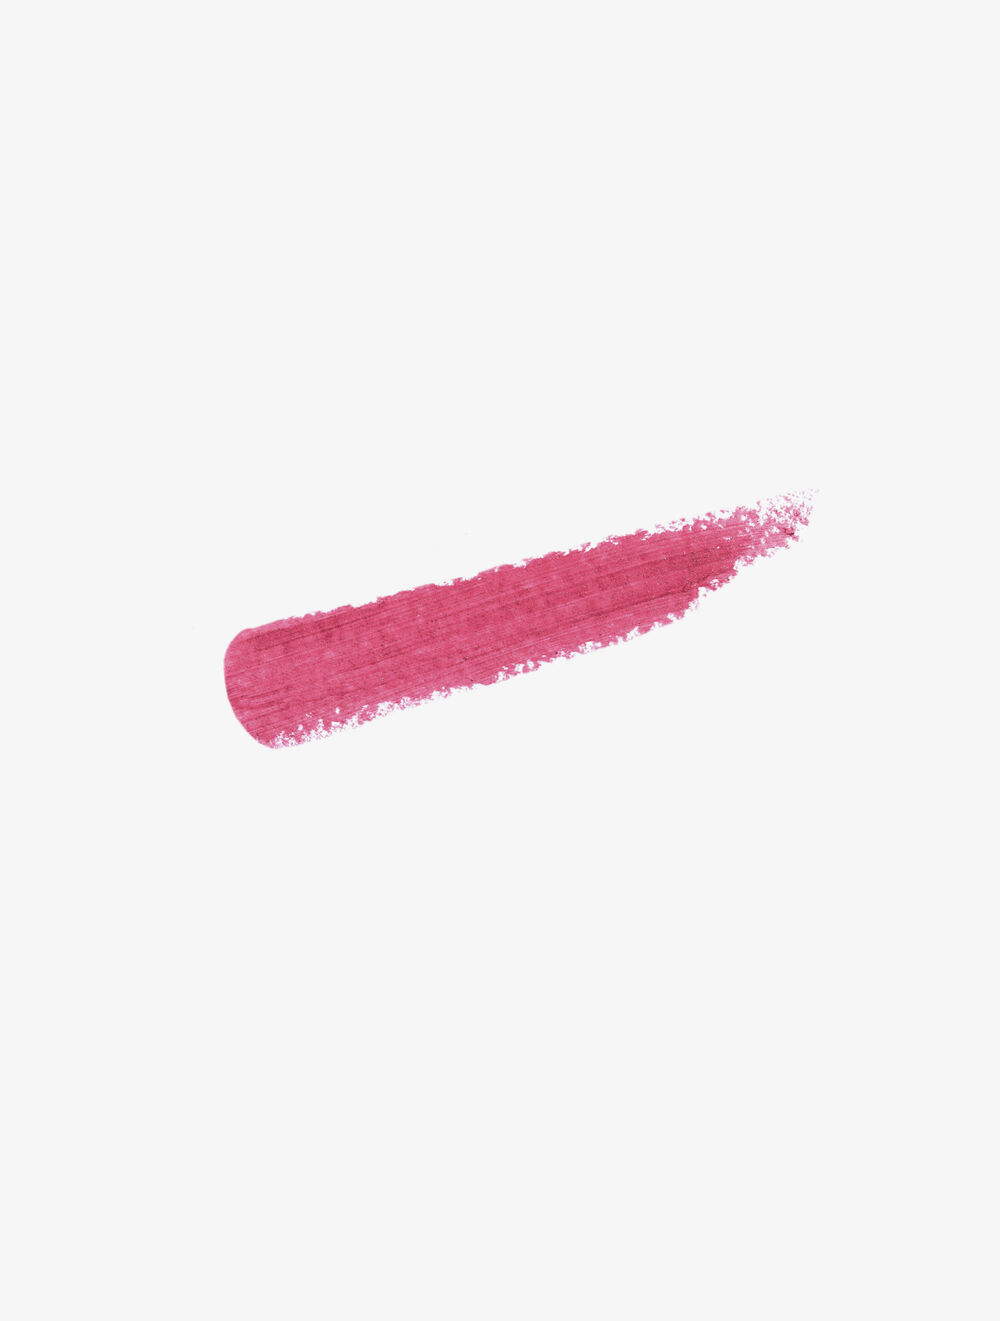 Phyto-Lip Shine N°5 Sheer Raspberry